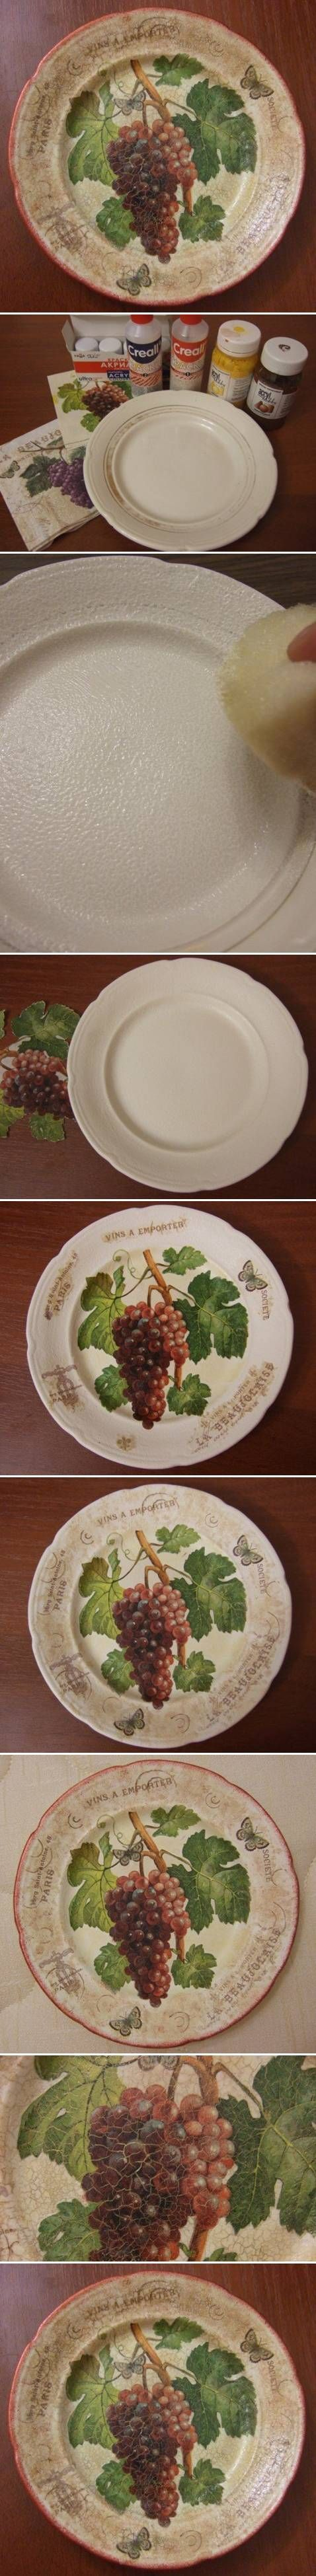 DIY Old Plate Decoupage photo tutorial....seriously intriguing